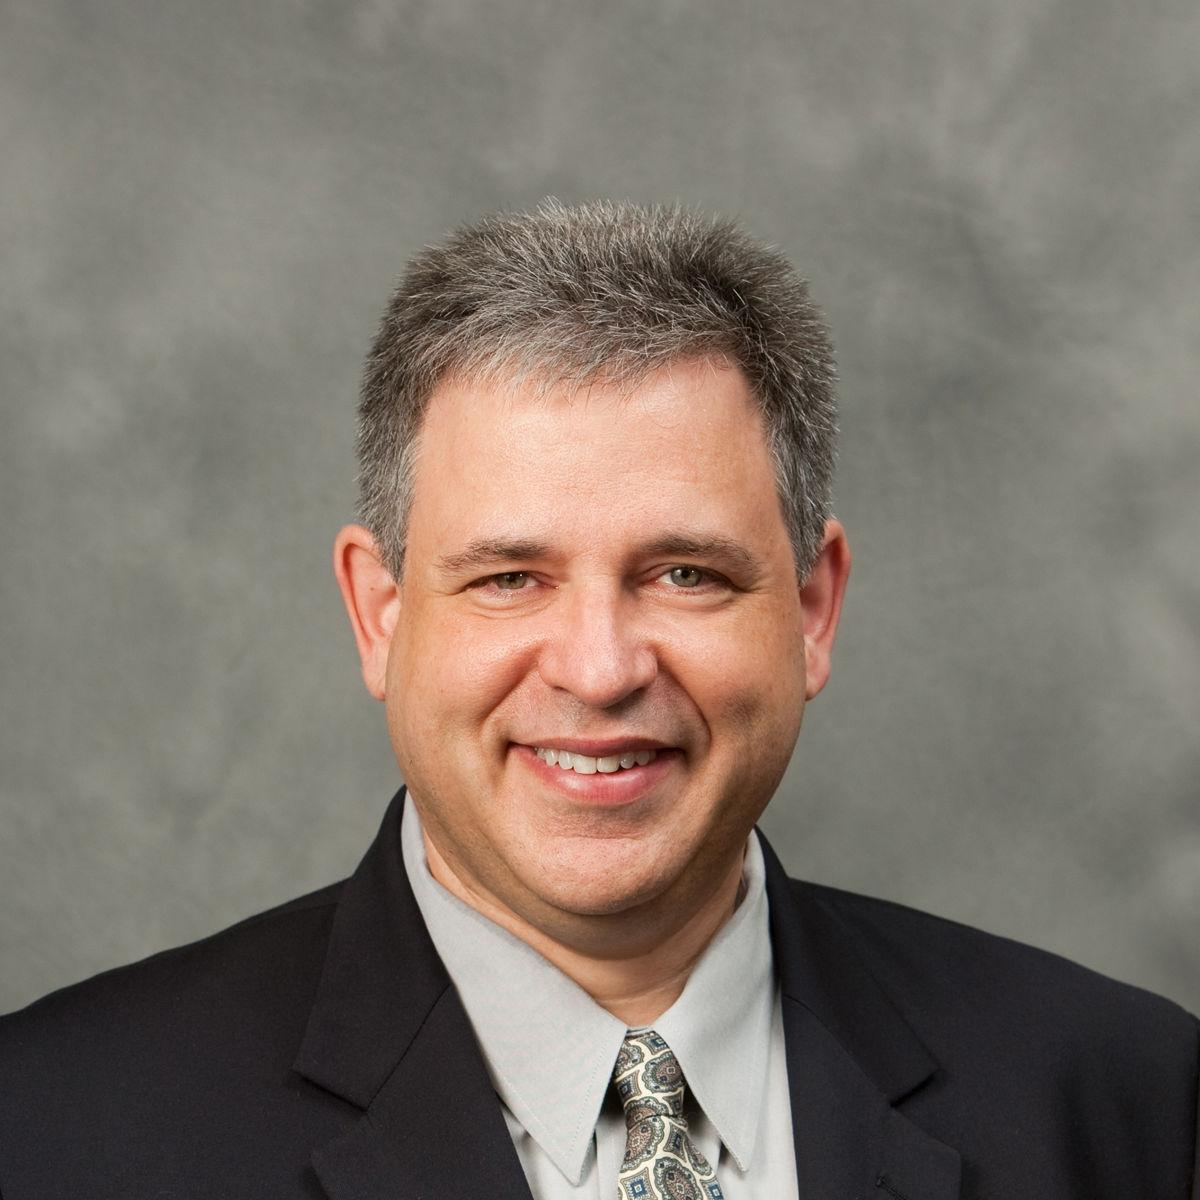 8/25/09 Headshot of Bill Axinn, new Director of ISR-Institute